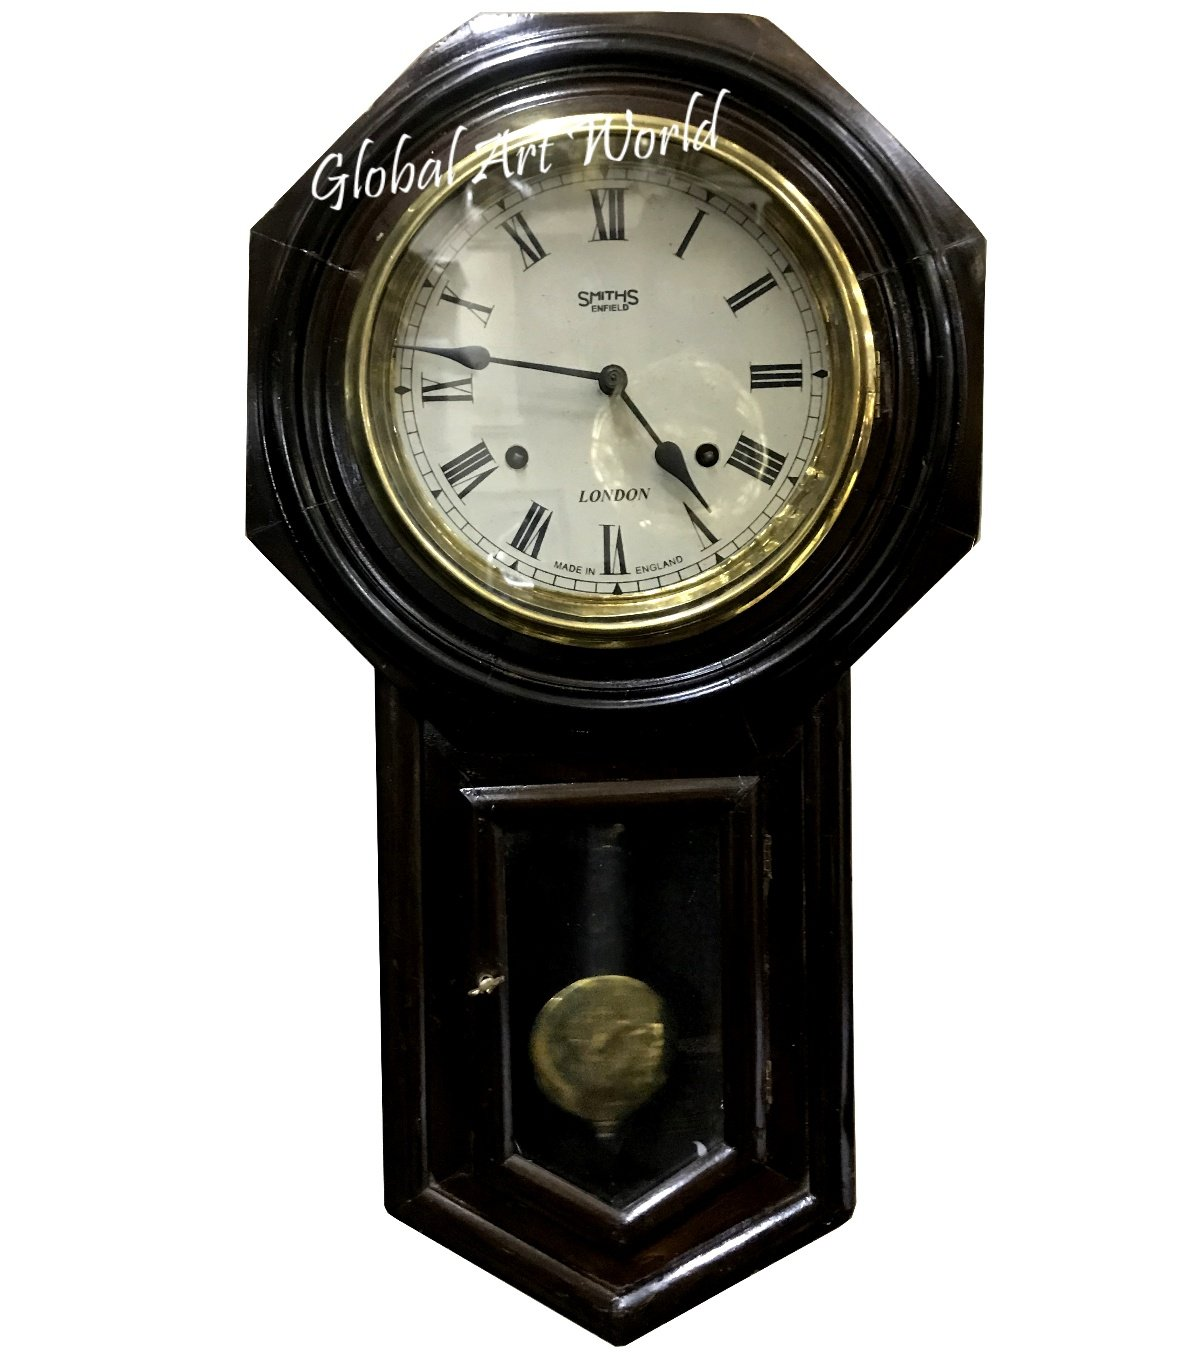 Antiques World Vintage Theme Stylized Look Antique Old Time Piece Dark Wooden Style With Tradition Smiths Enfield Pendulum Wall Clocks And Clock AWUSAHB 0243